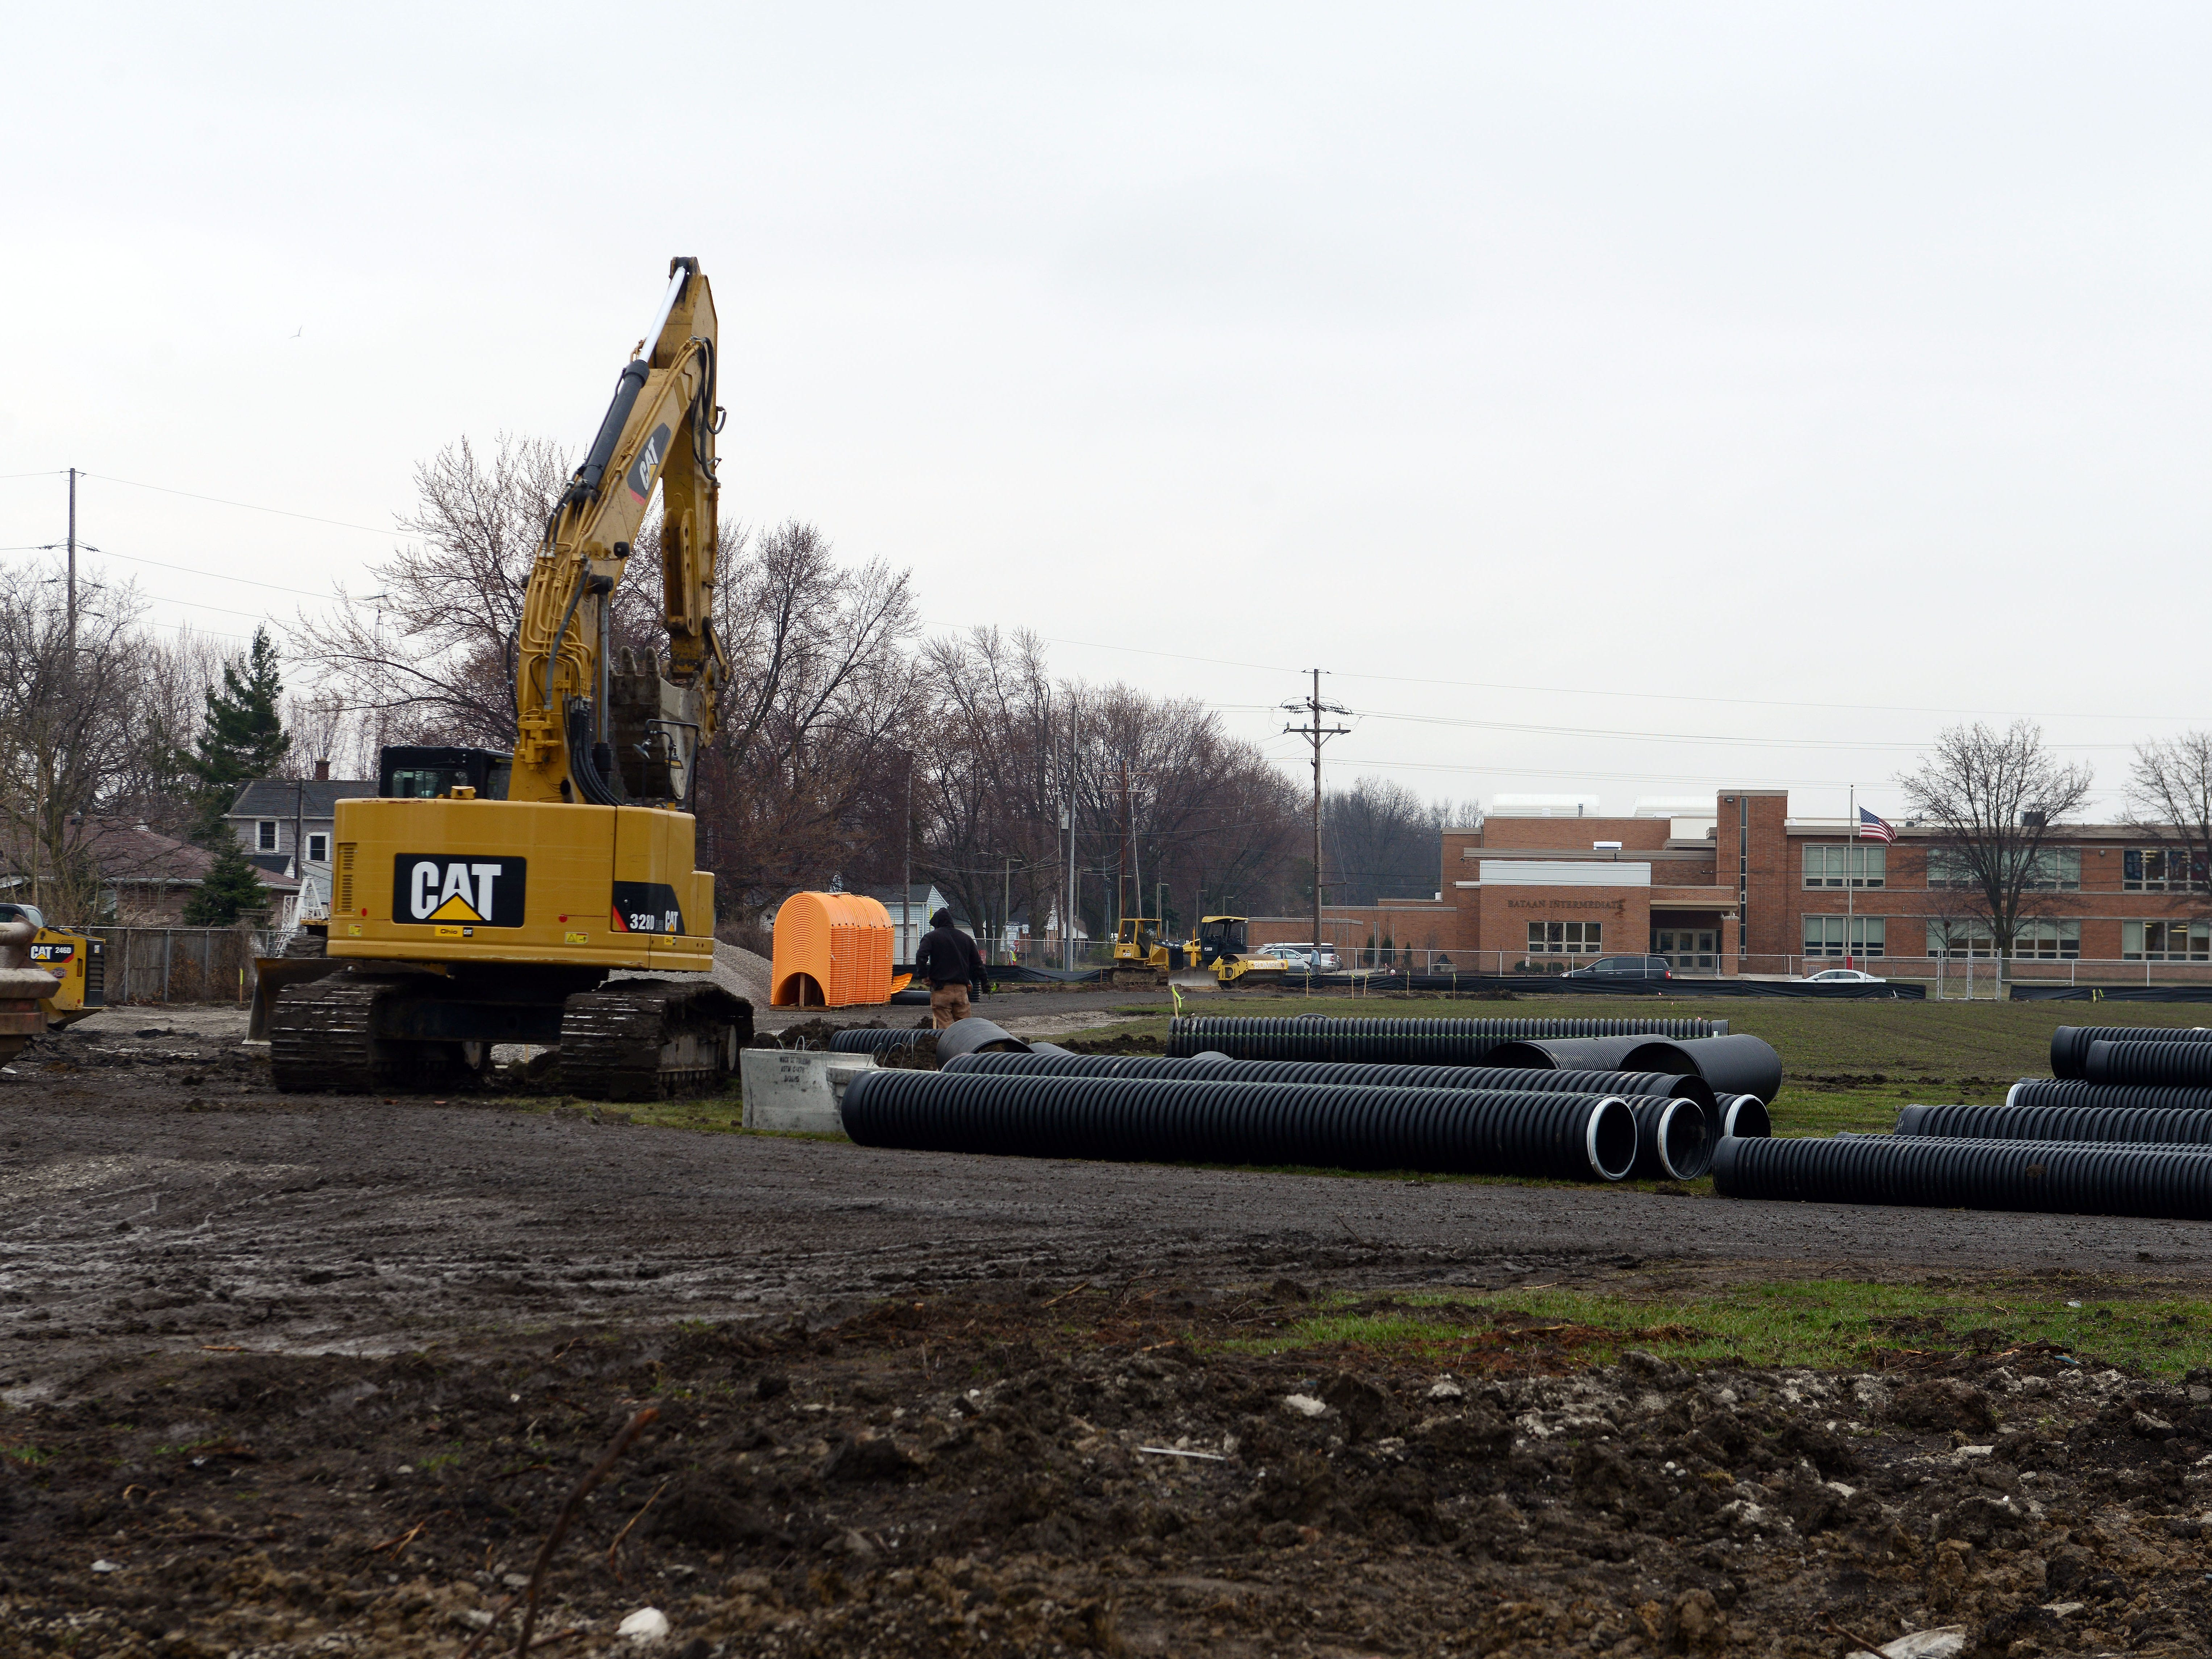 Port Clinton's track team does not have a place to practice because of construction.